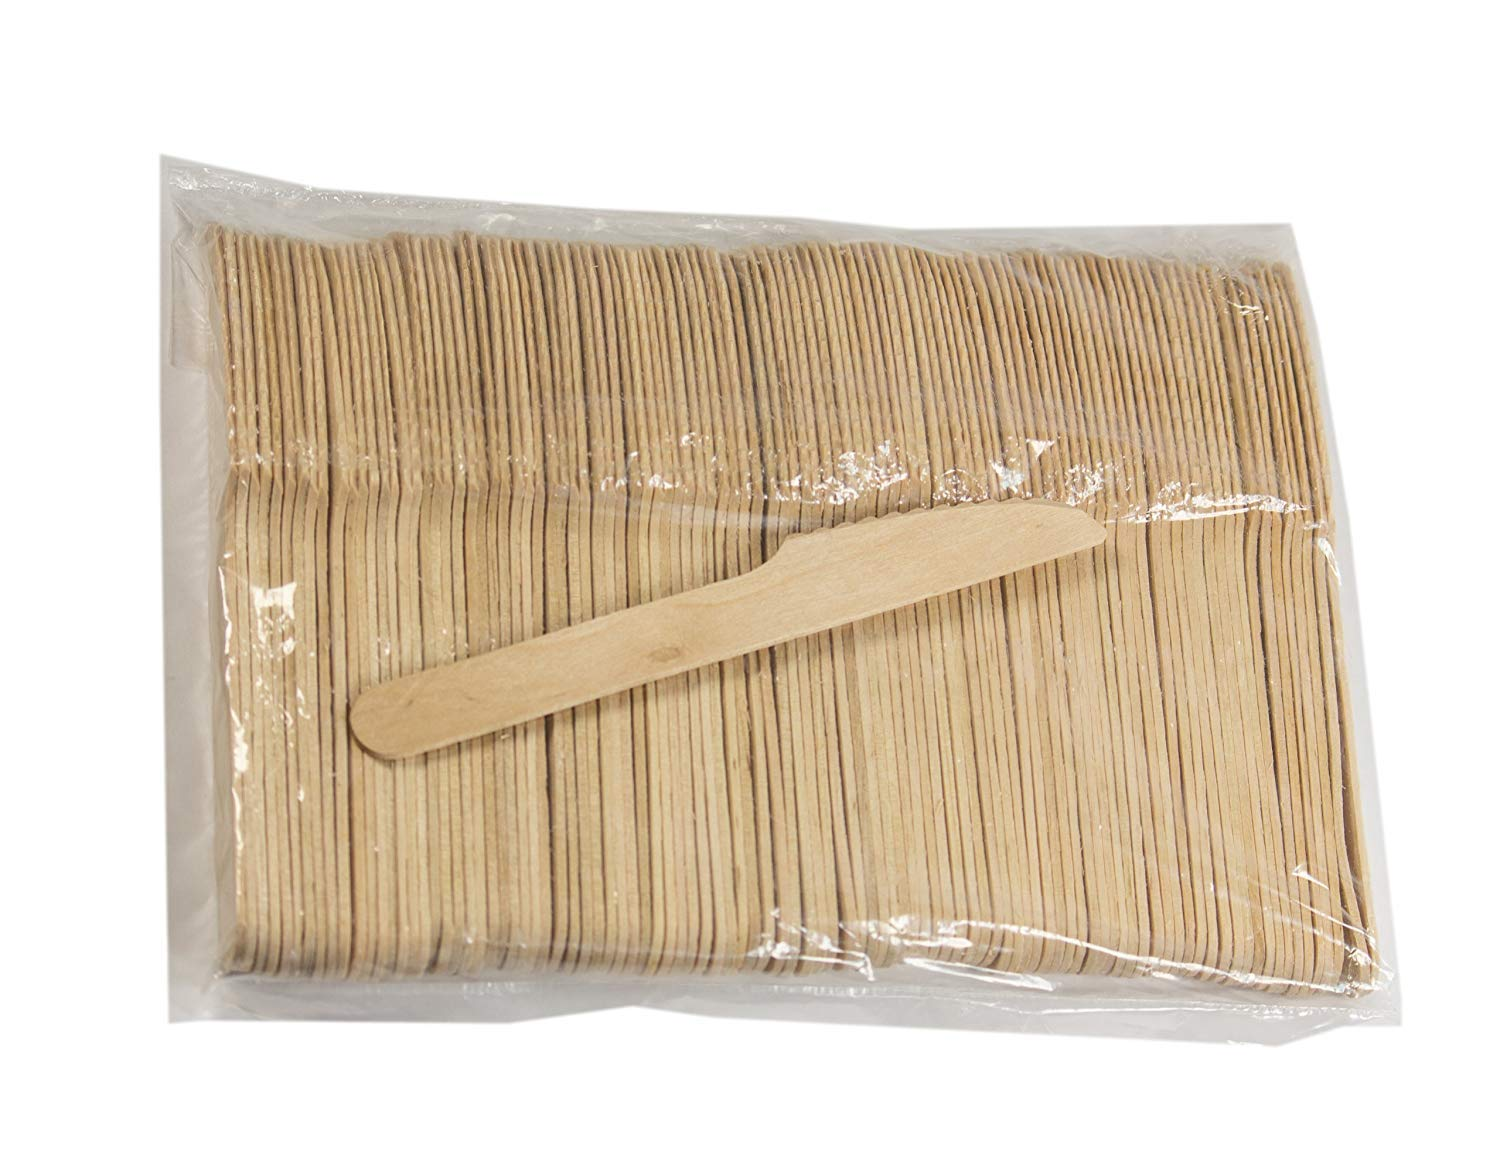 Perfect Stix Wooden Disposable Cutlery Knifes 6 length pack of 100ct